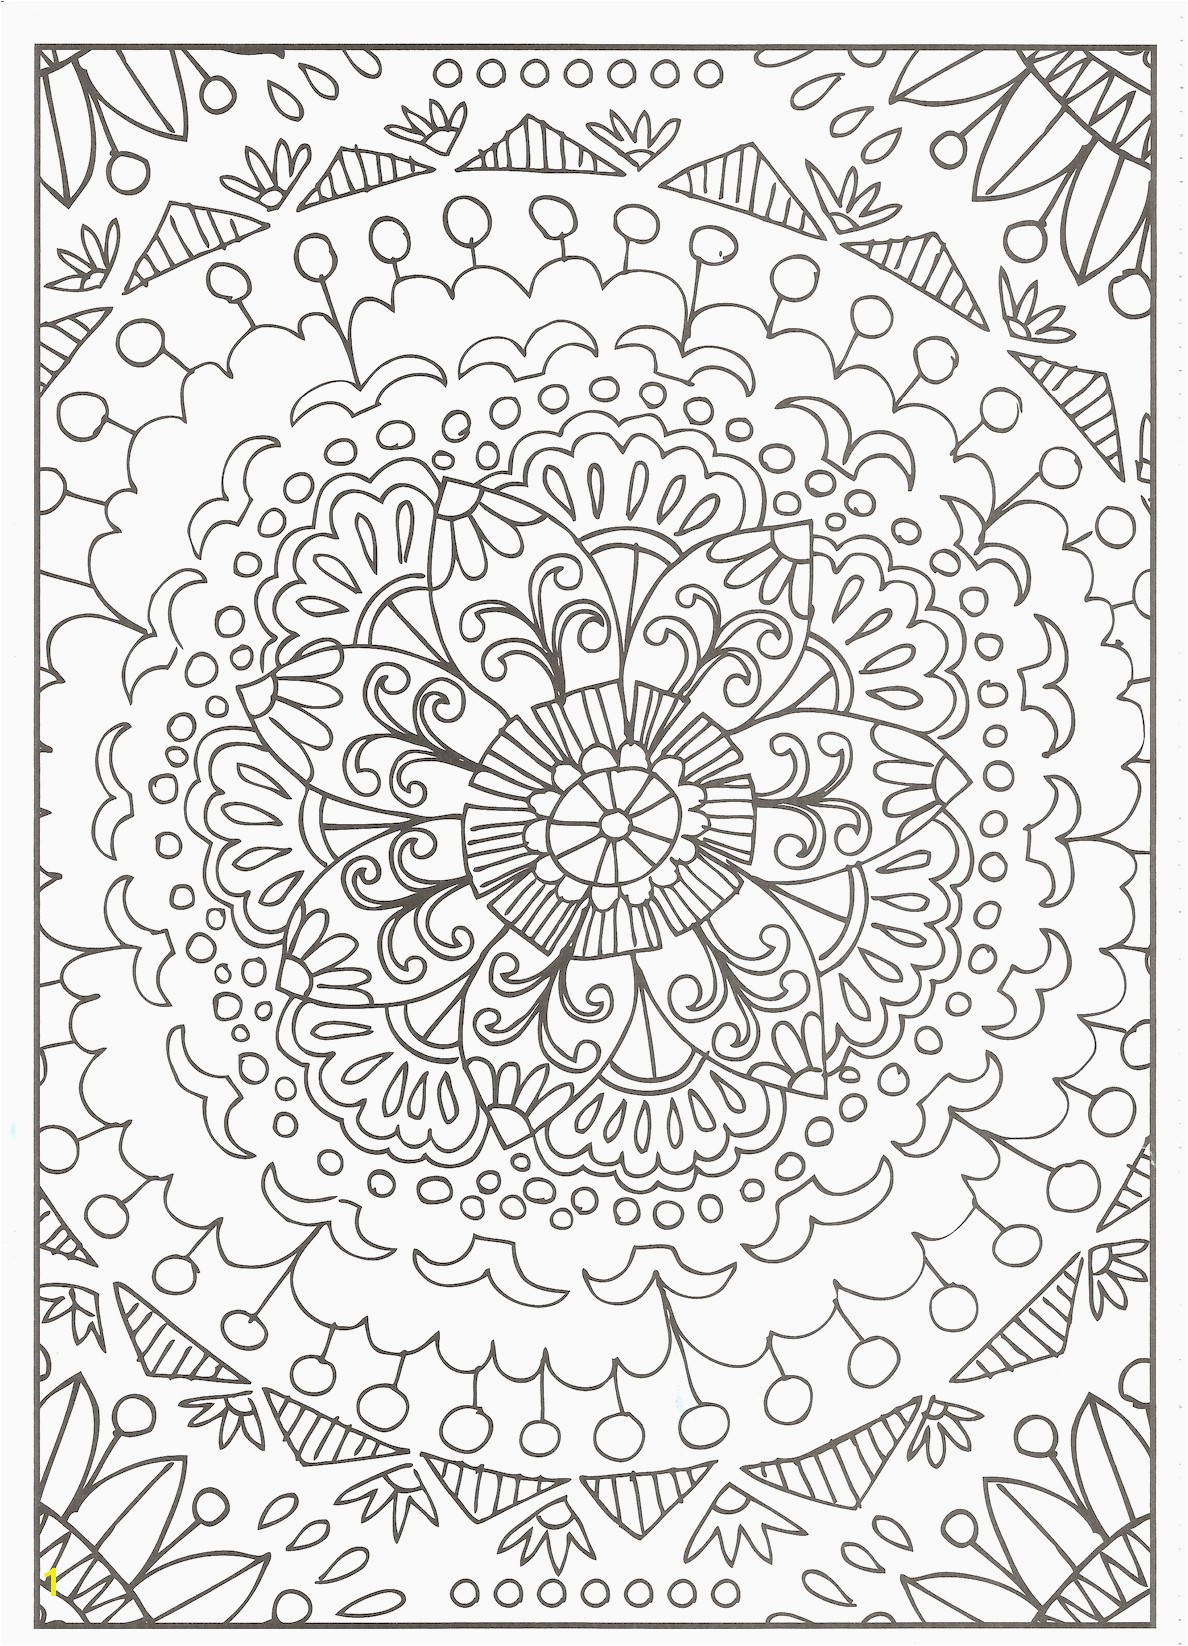 Free Printable Barn Coloring Pages Awesome Fresh Free Owl Coloring Pages Elegant Printable Cds 0d Printable